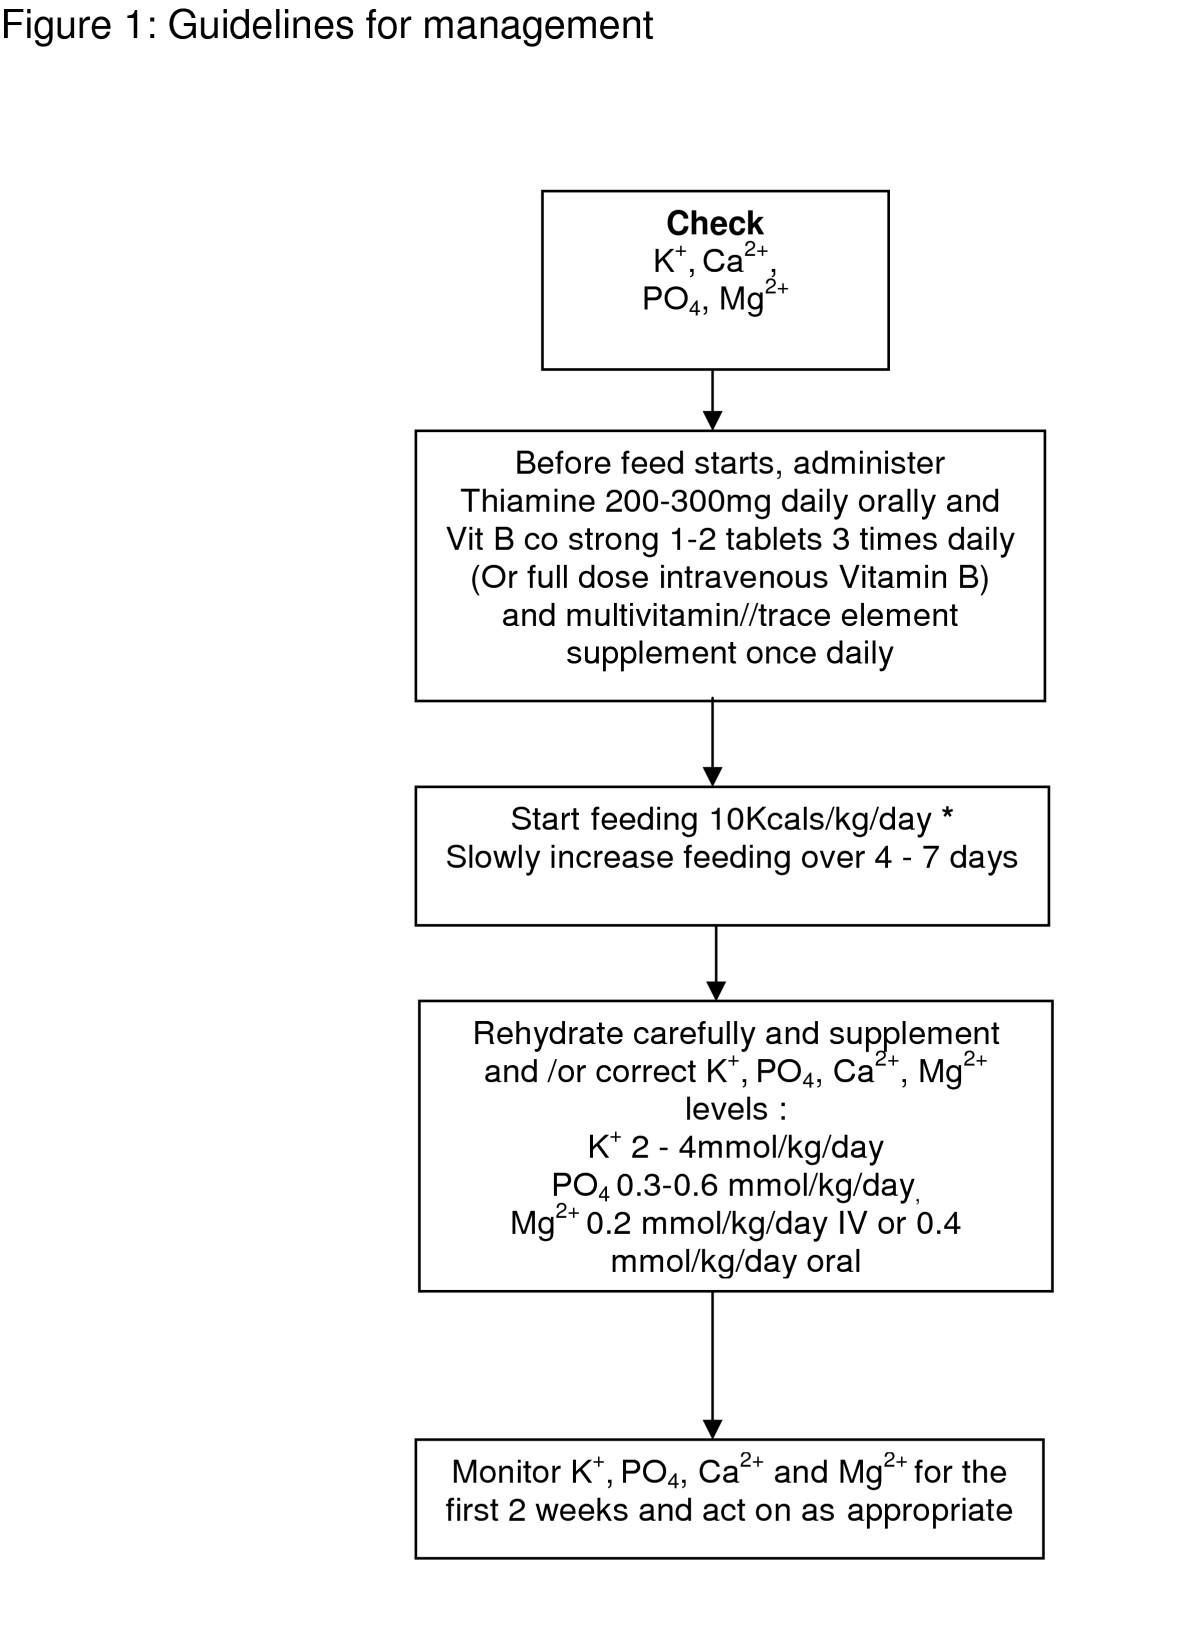 http://static-content.springer.com/image/art%3A10.1186%2F1758-3284-1-4/MediaObjects/13051_2008_Article_4_Fig1_HTML.jpg